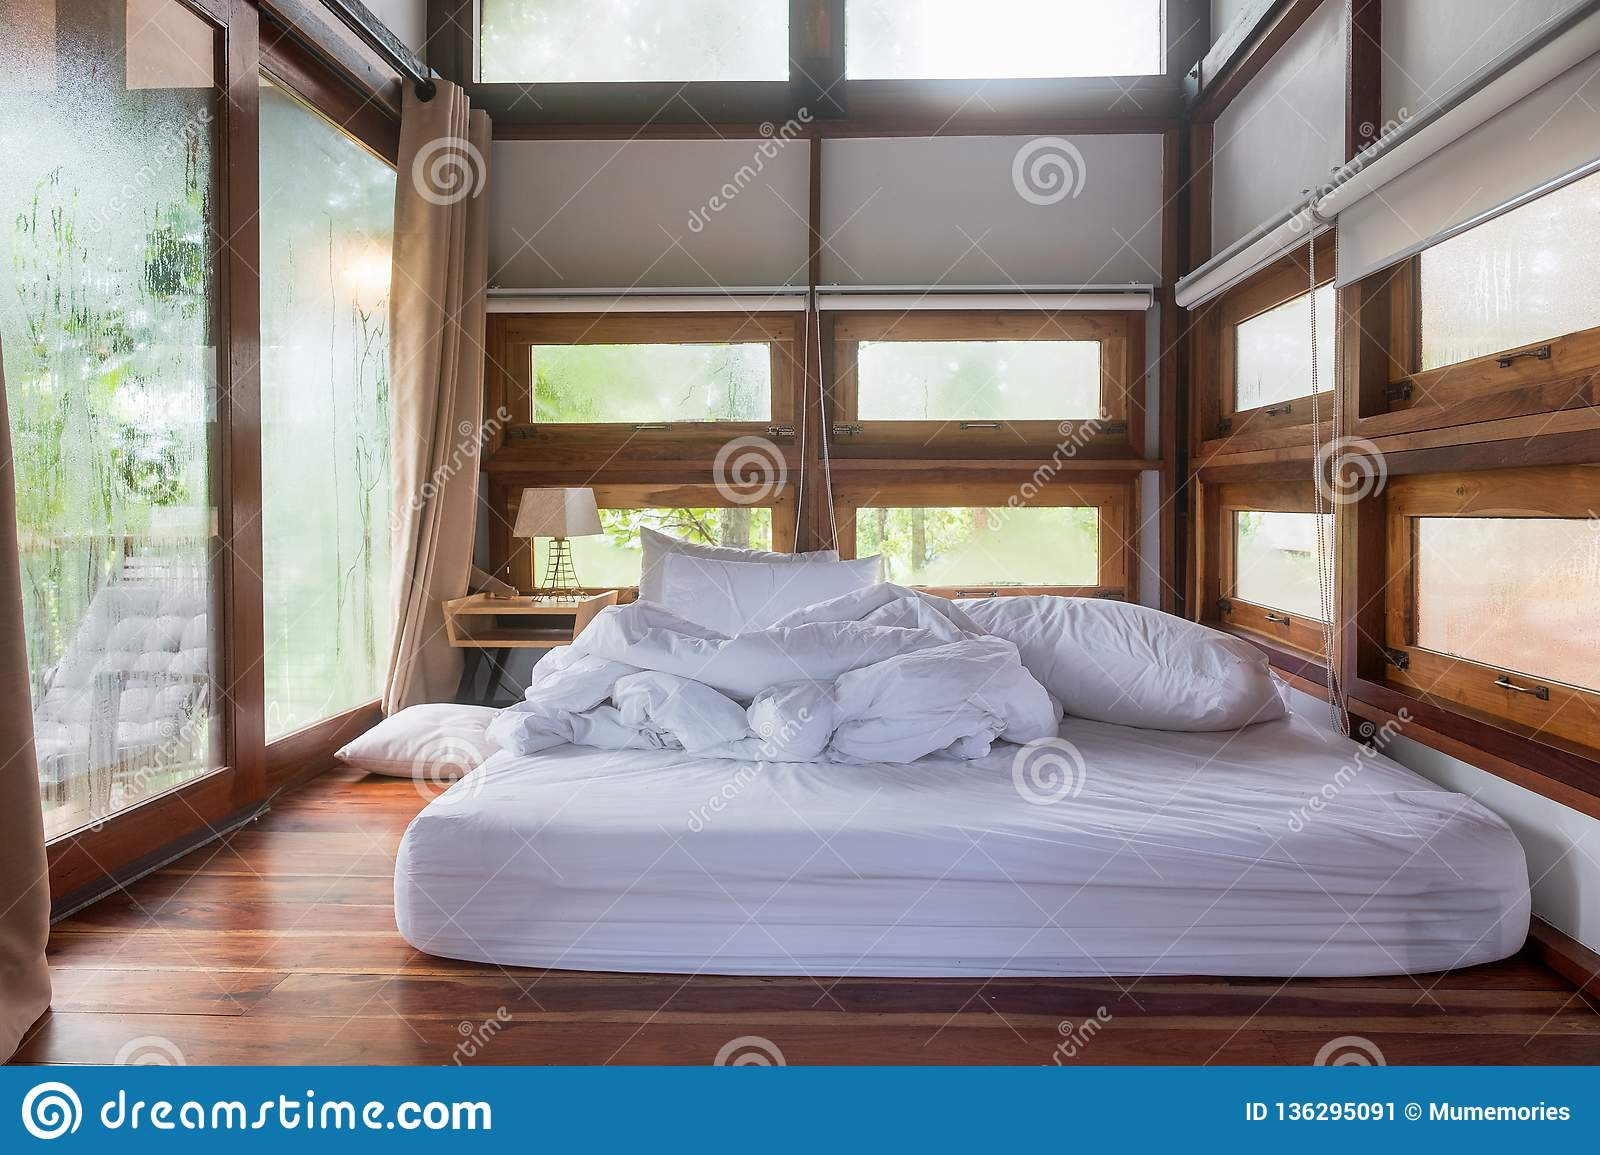 Interior Cozy Bedroom After Waking Up In Wooden House At Morning Stock Image Image Of Pillow Hotel 136295091